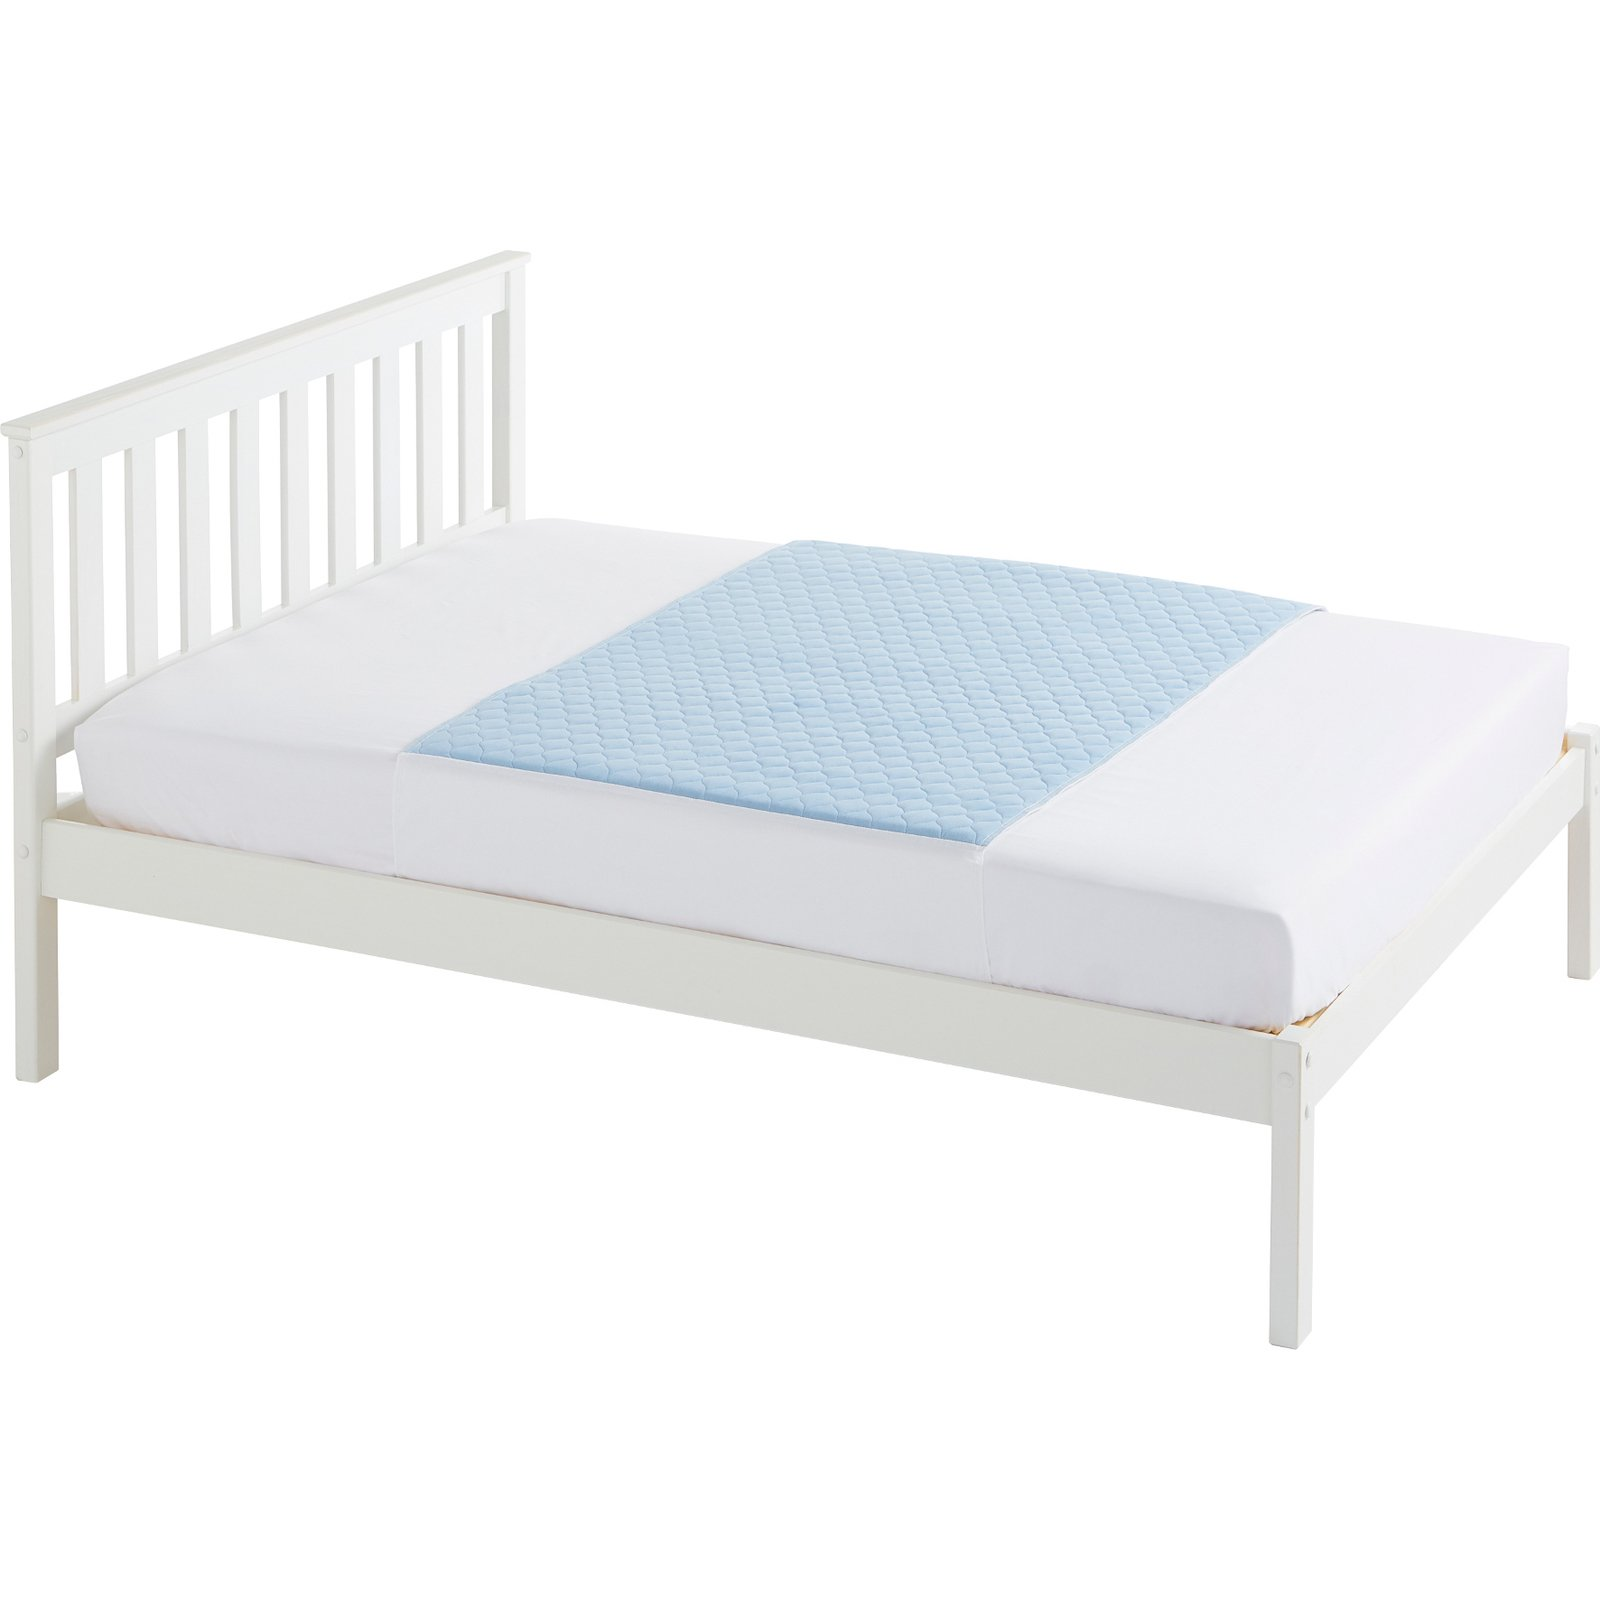 Double Bed 139x91cm Blue